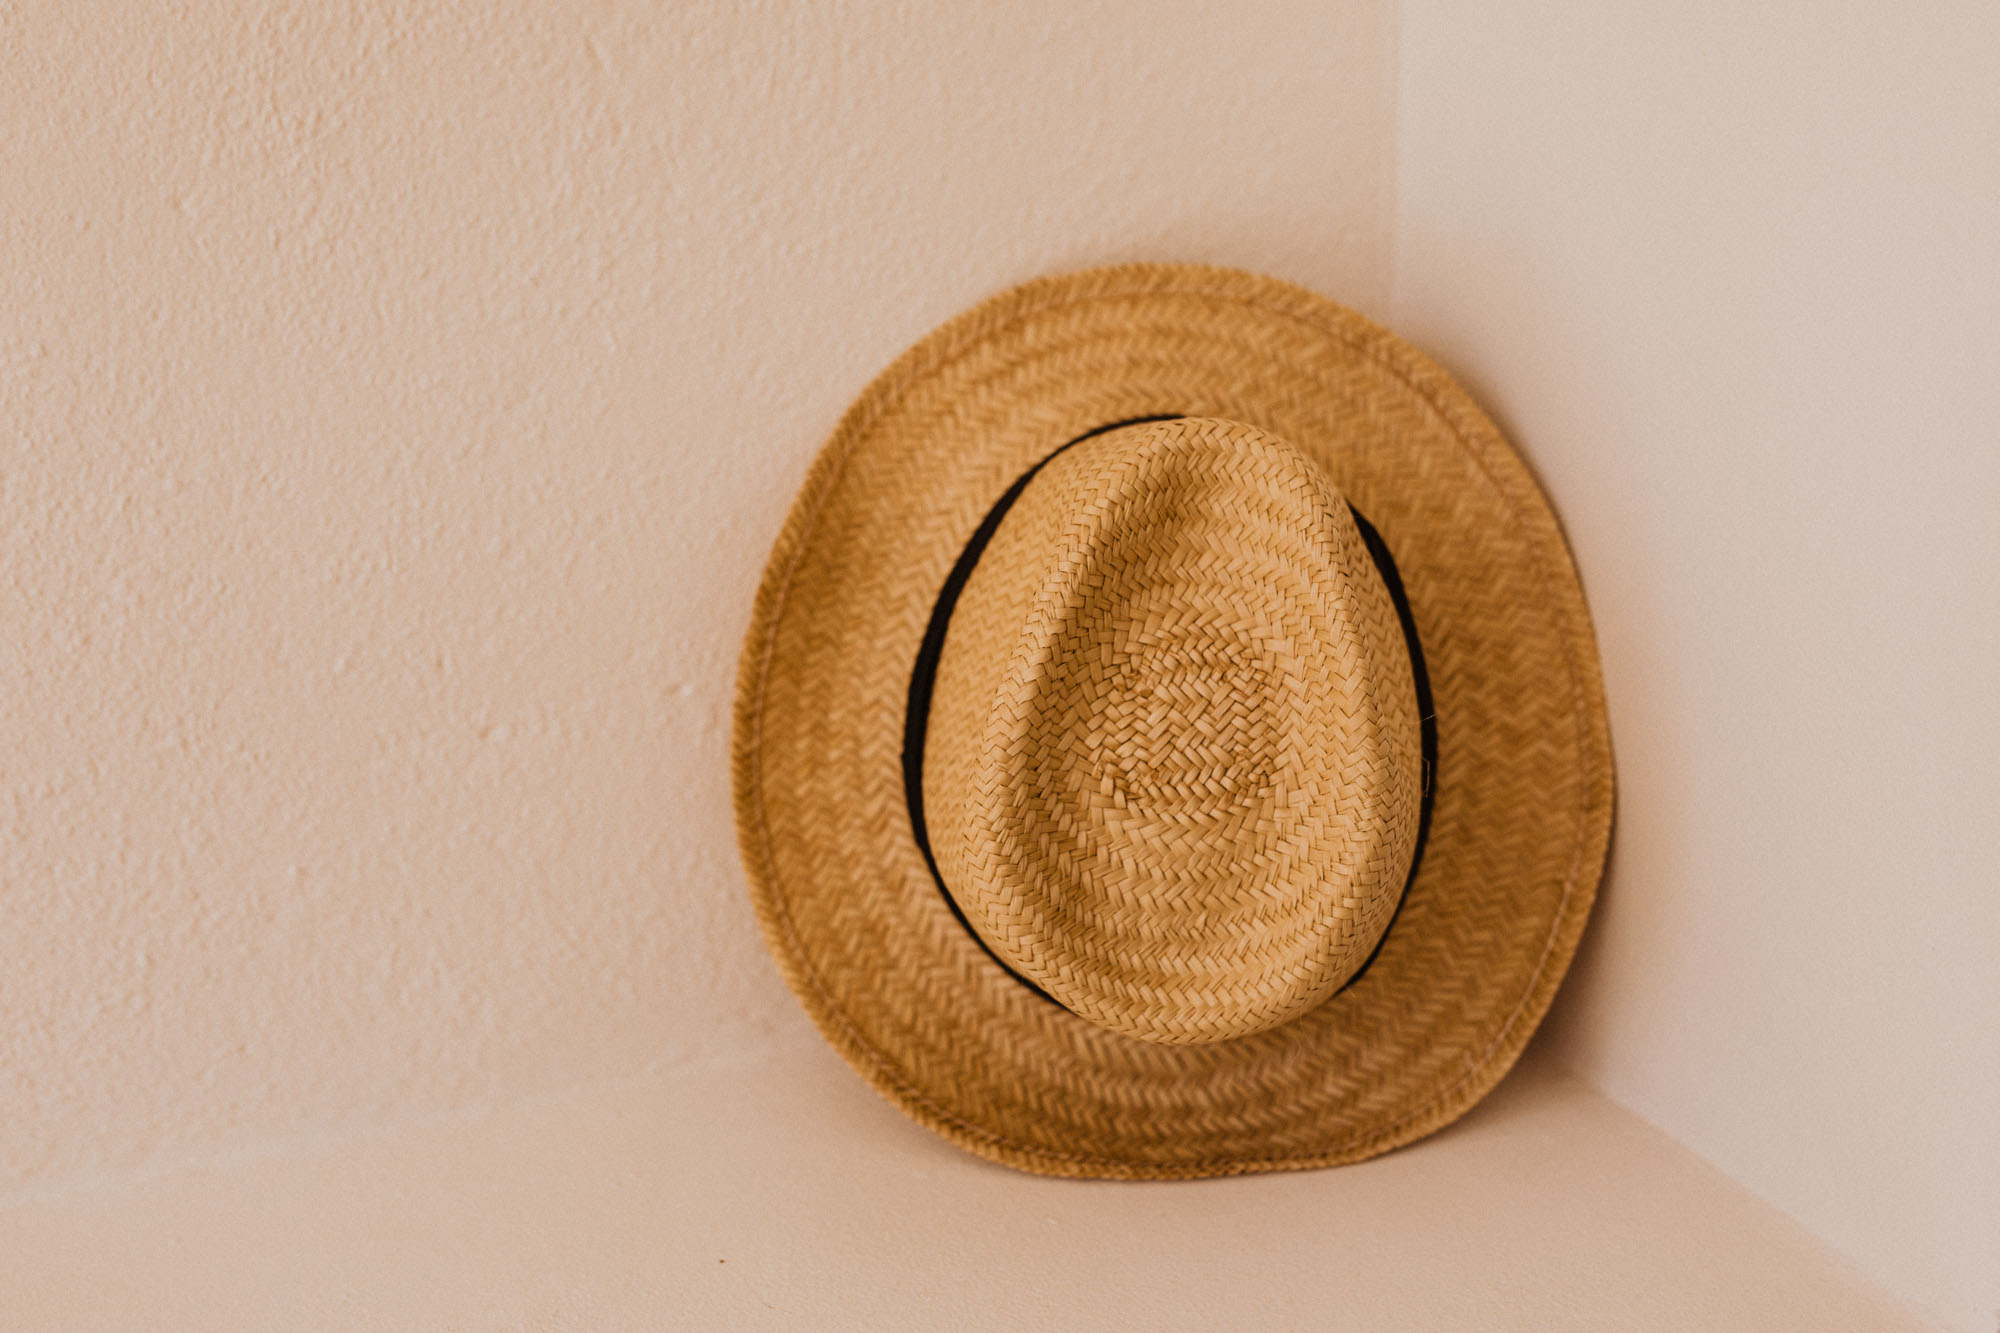 beach hat in Mexico